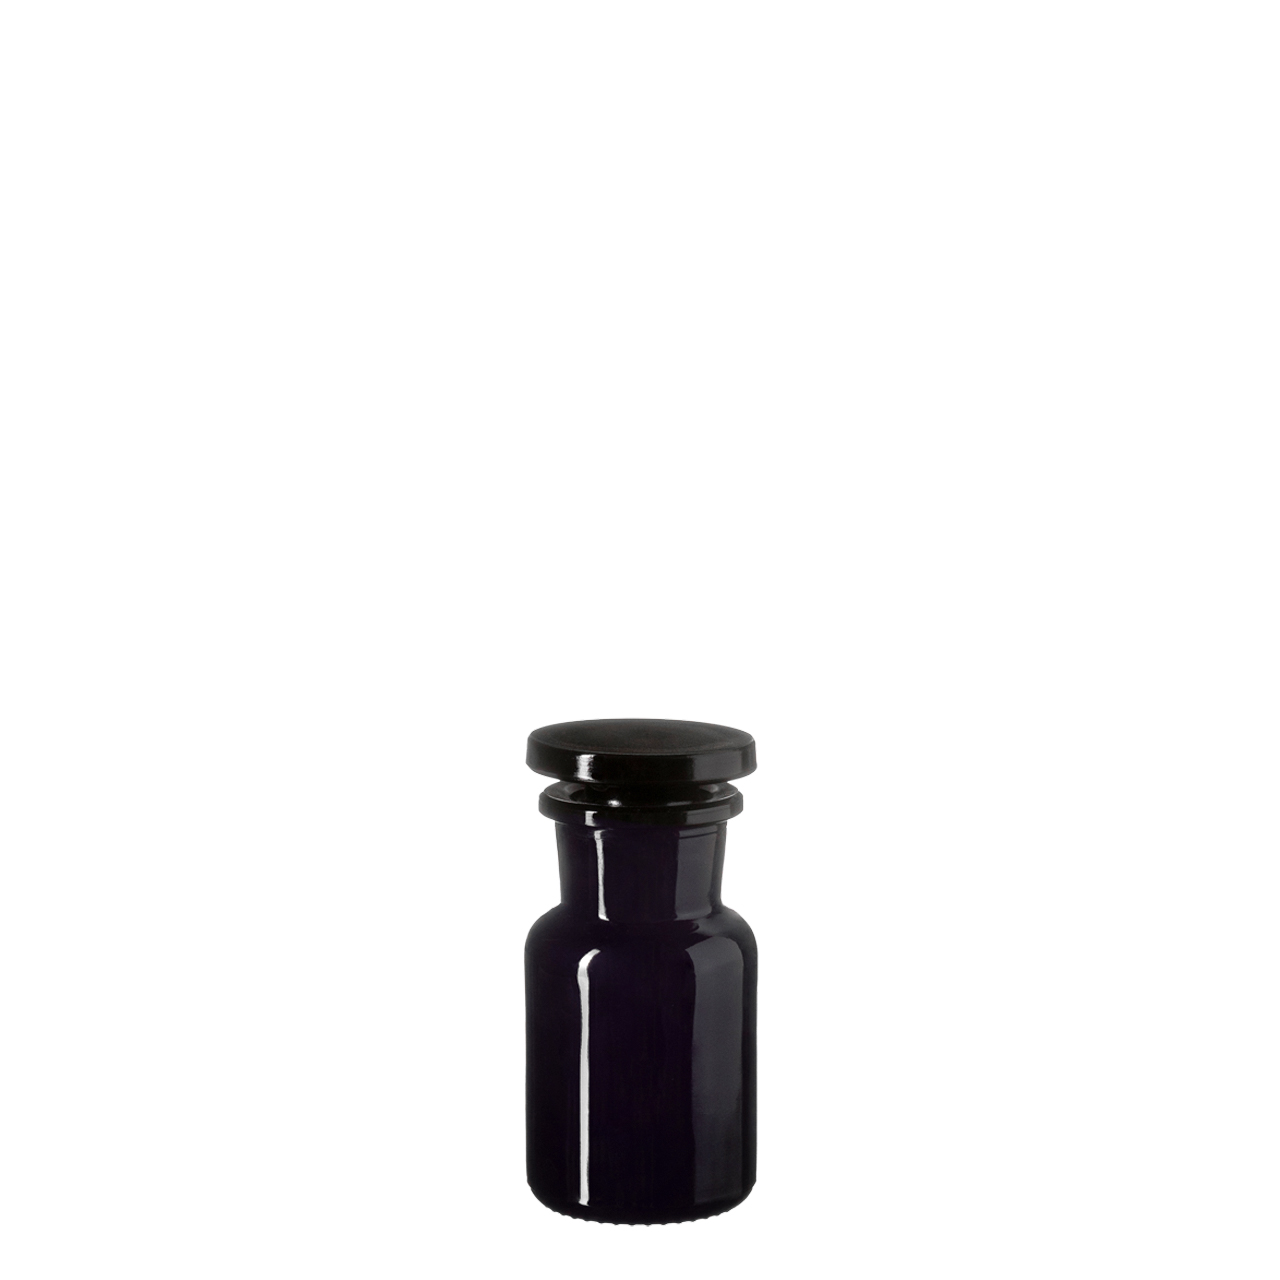 Apothecary jar Libra 50 ml, Miron, grinded glass stopper